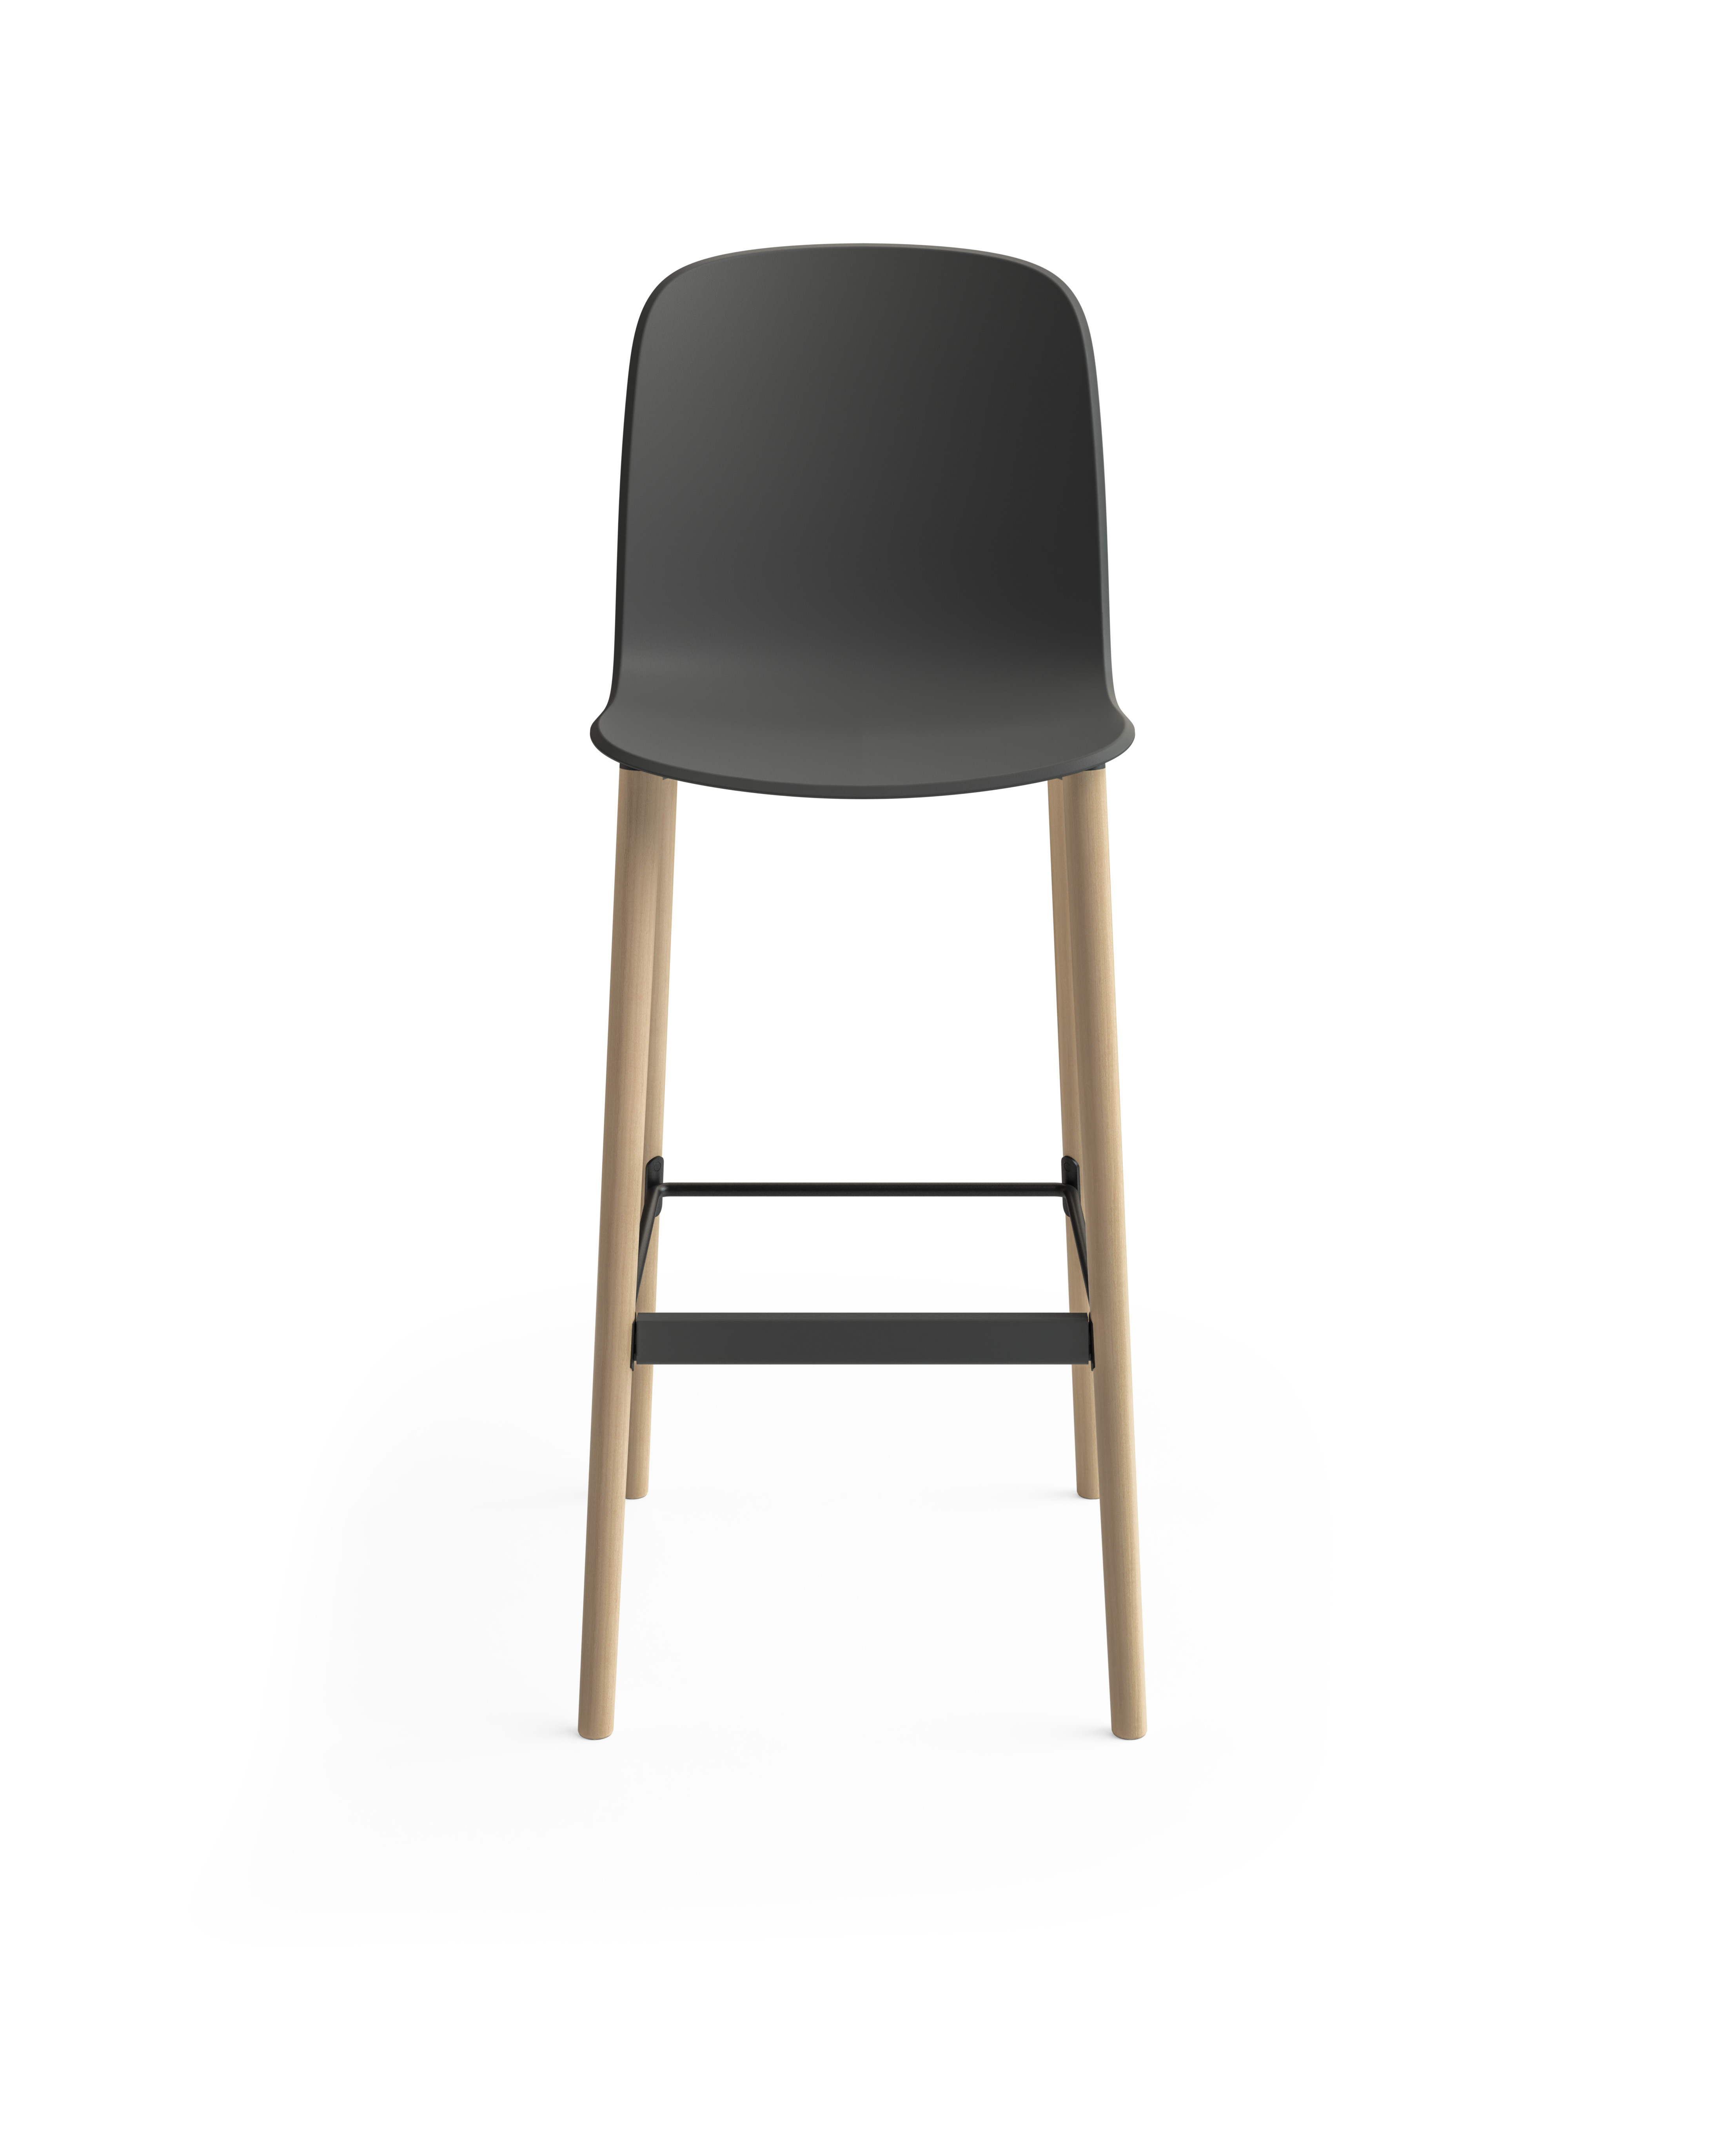 Tabouret de bar Cavatina de Steelcase - 4 pieds 03